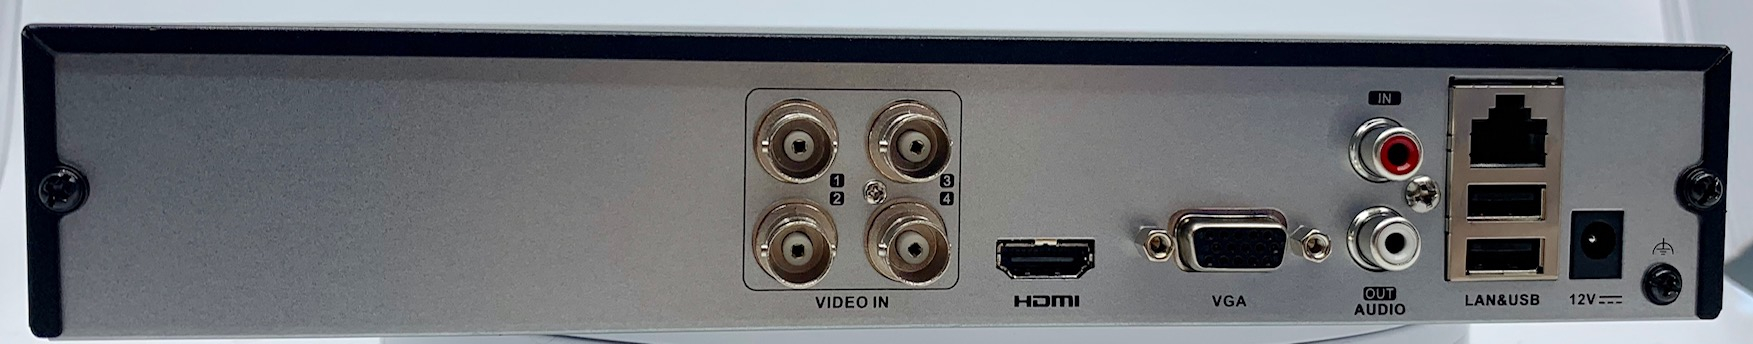 HiLook by Hikvision DVR-204Q-K1 4CH H265+ Turbo HD DVR [HL